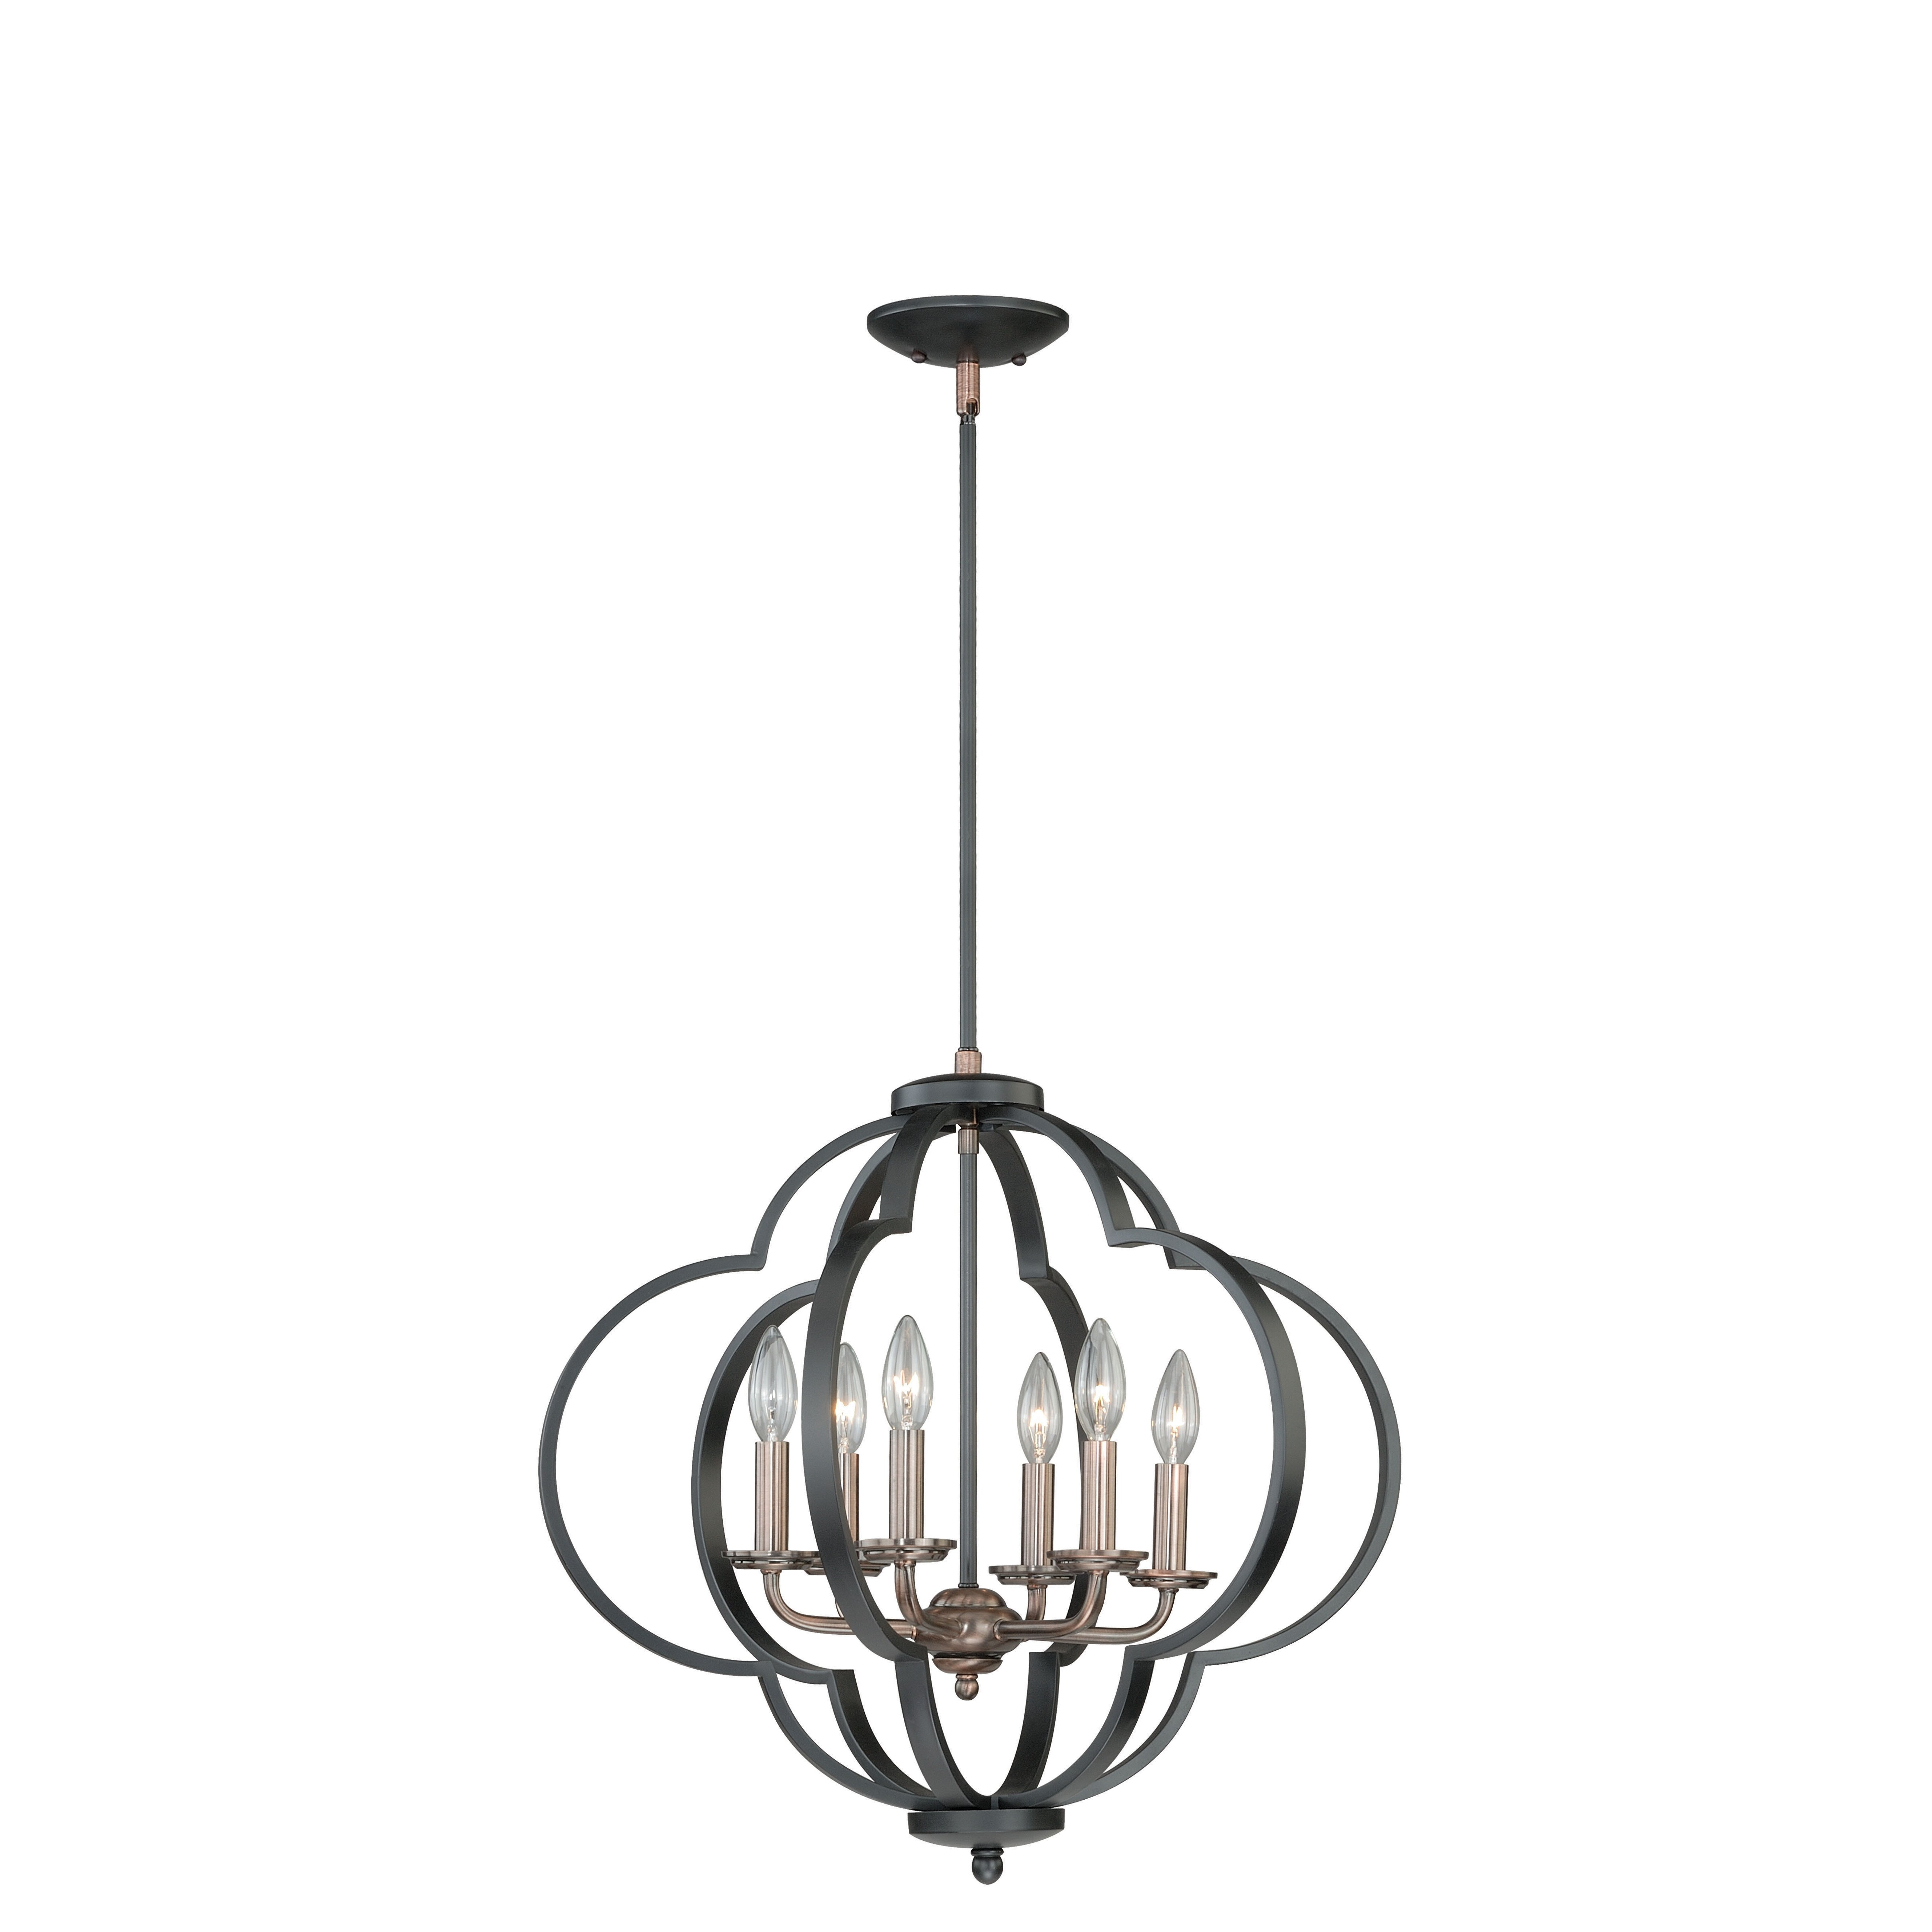 30228619 moreover Initial Kitchen Planning New Build Standard Cabi  Height From Floor as well  as well Felix White Barstools Modern Bar Stools And Counter Stools also F44e8cbbf51d2a42. on kitchen pendant lights images